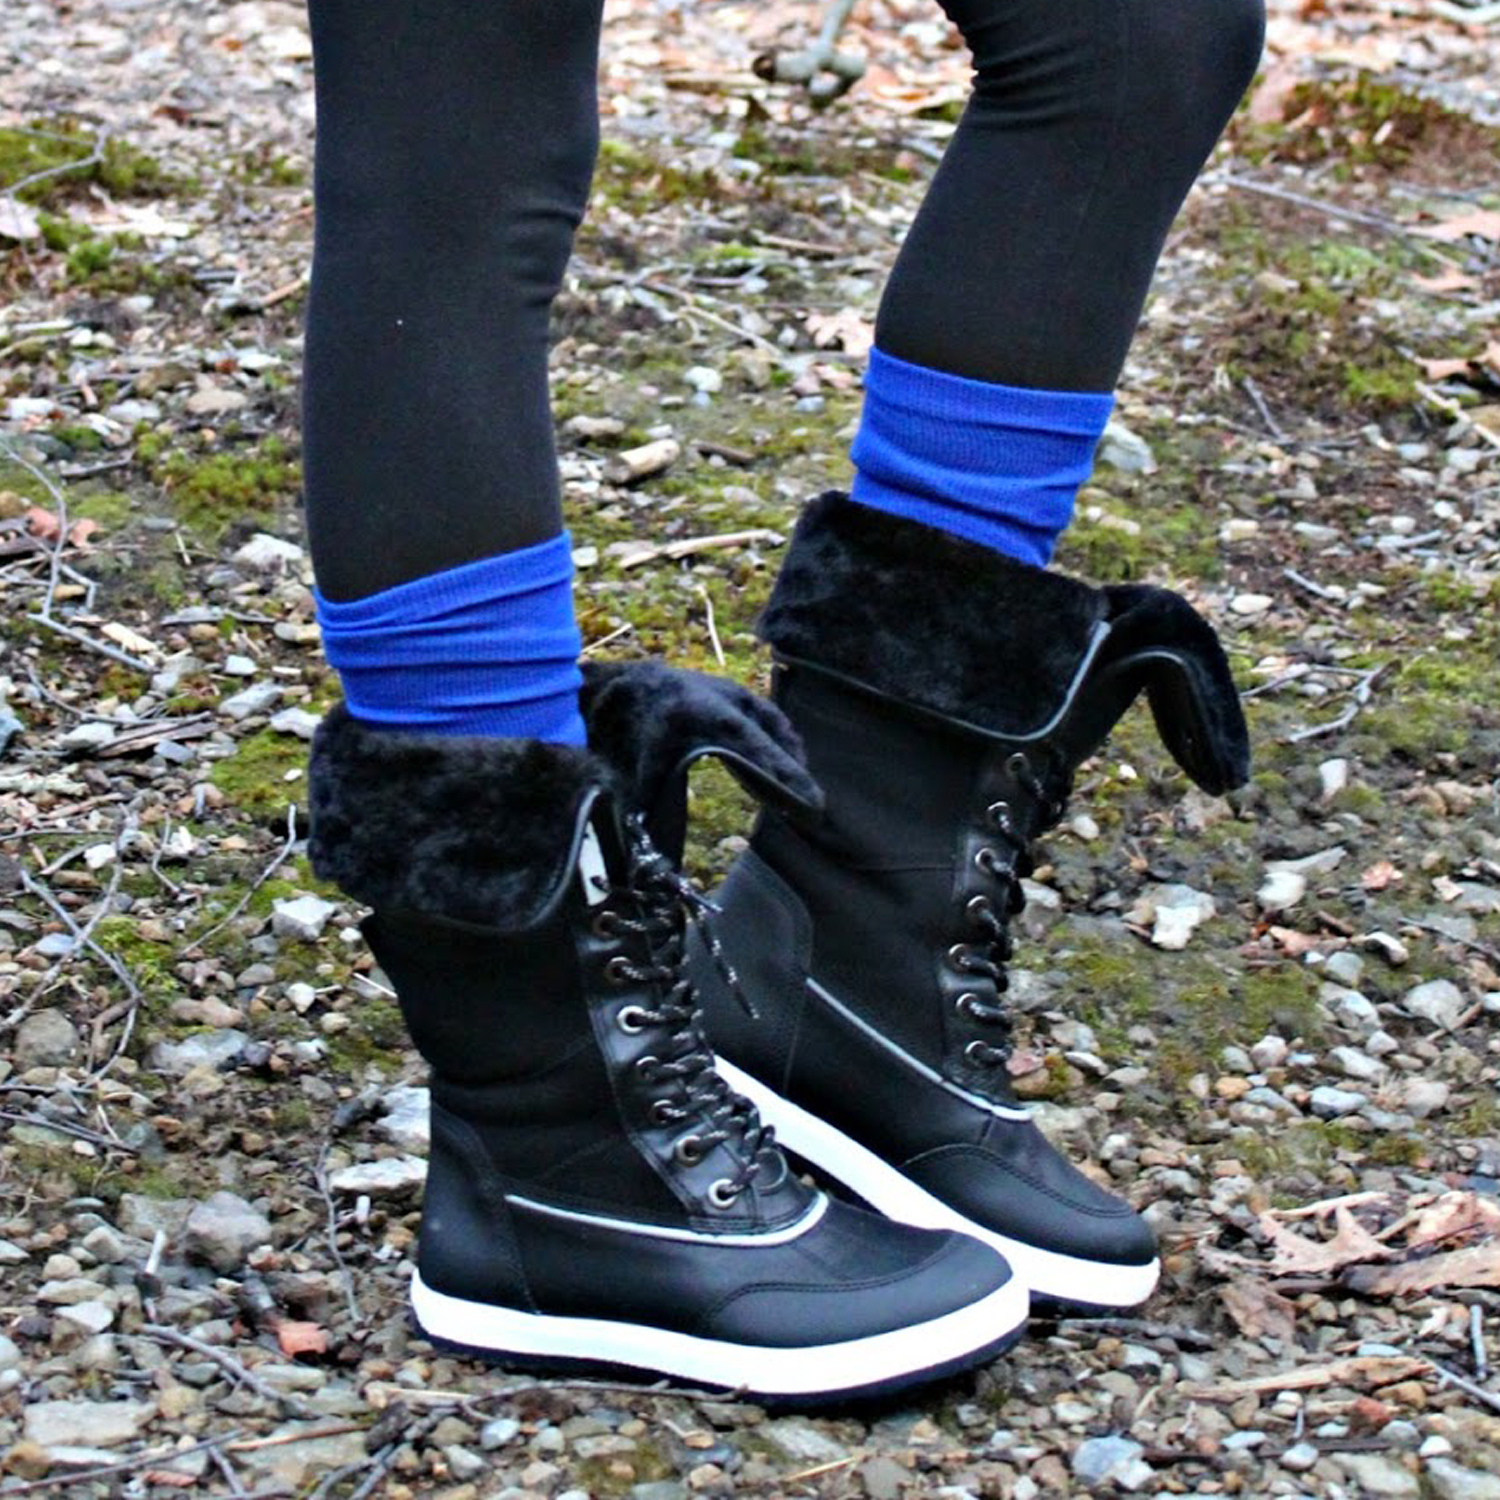 winter boots with scrunched down socks